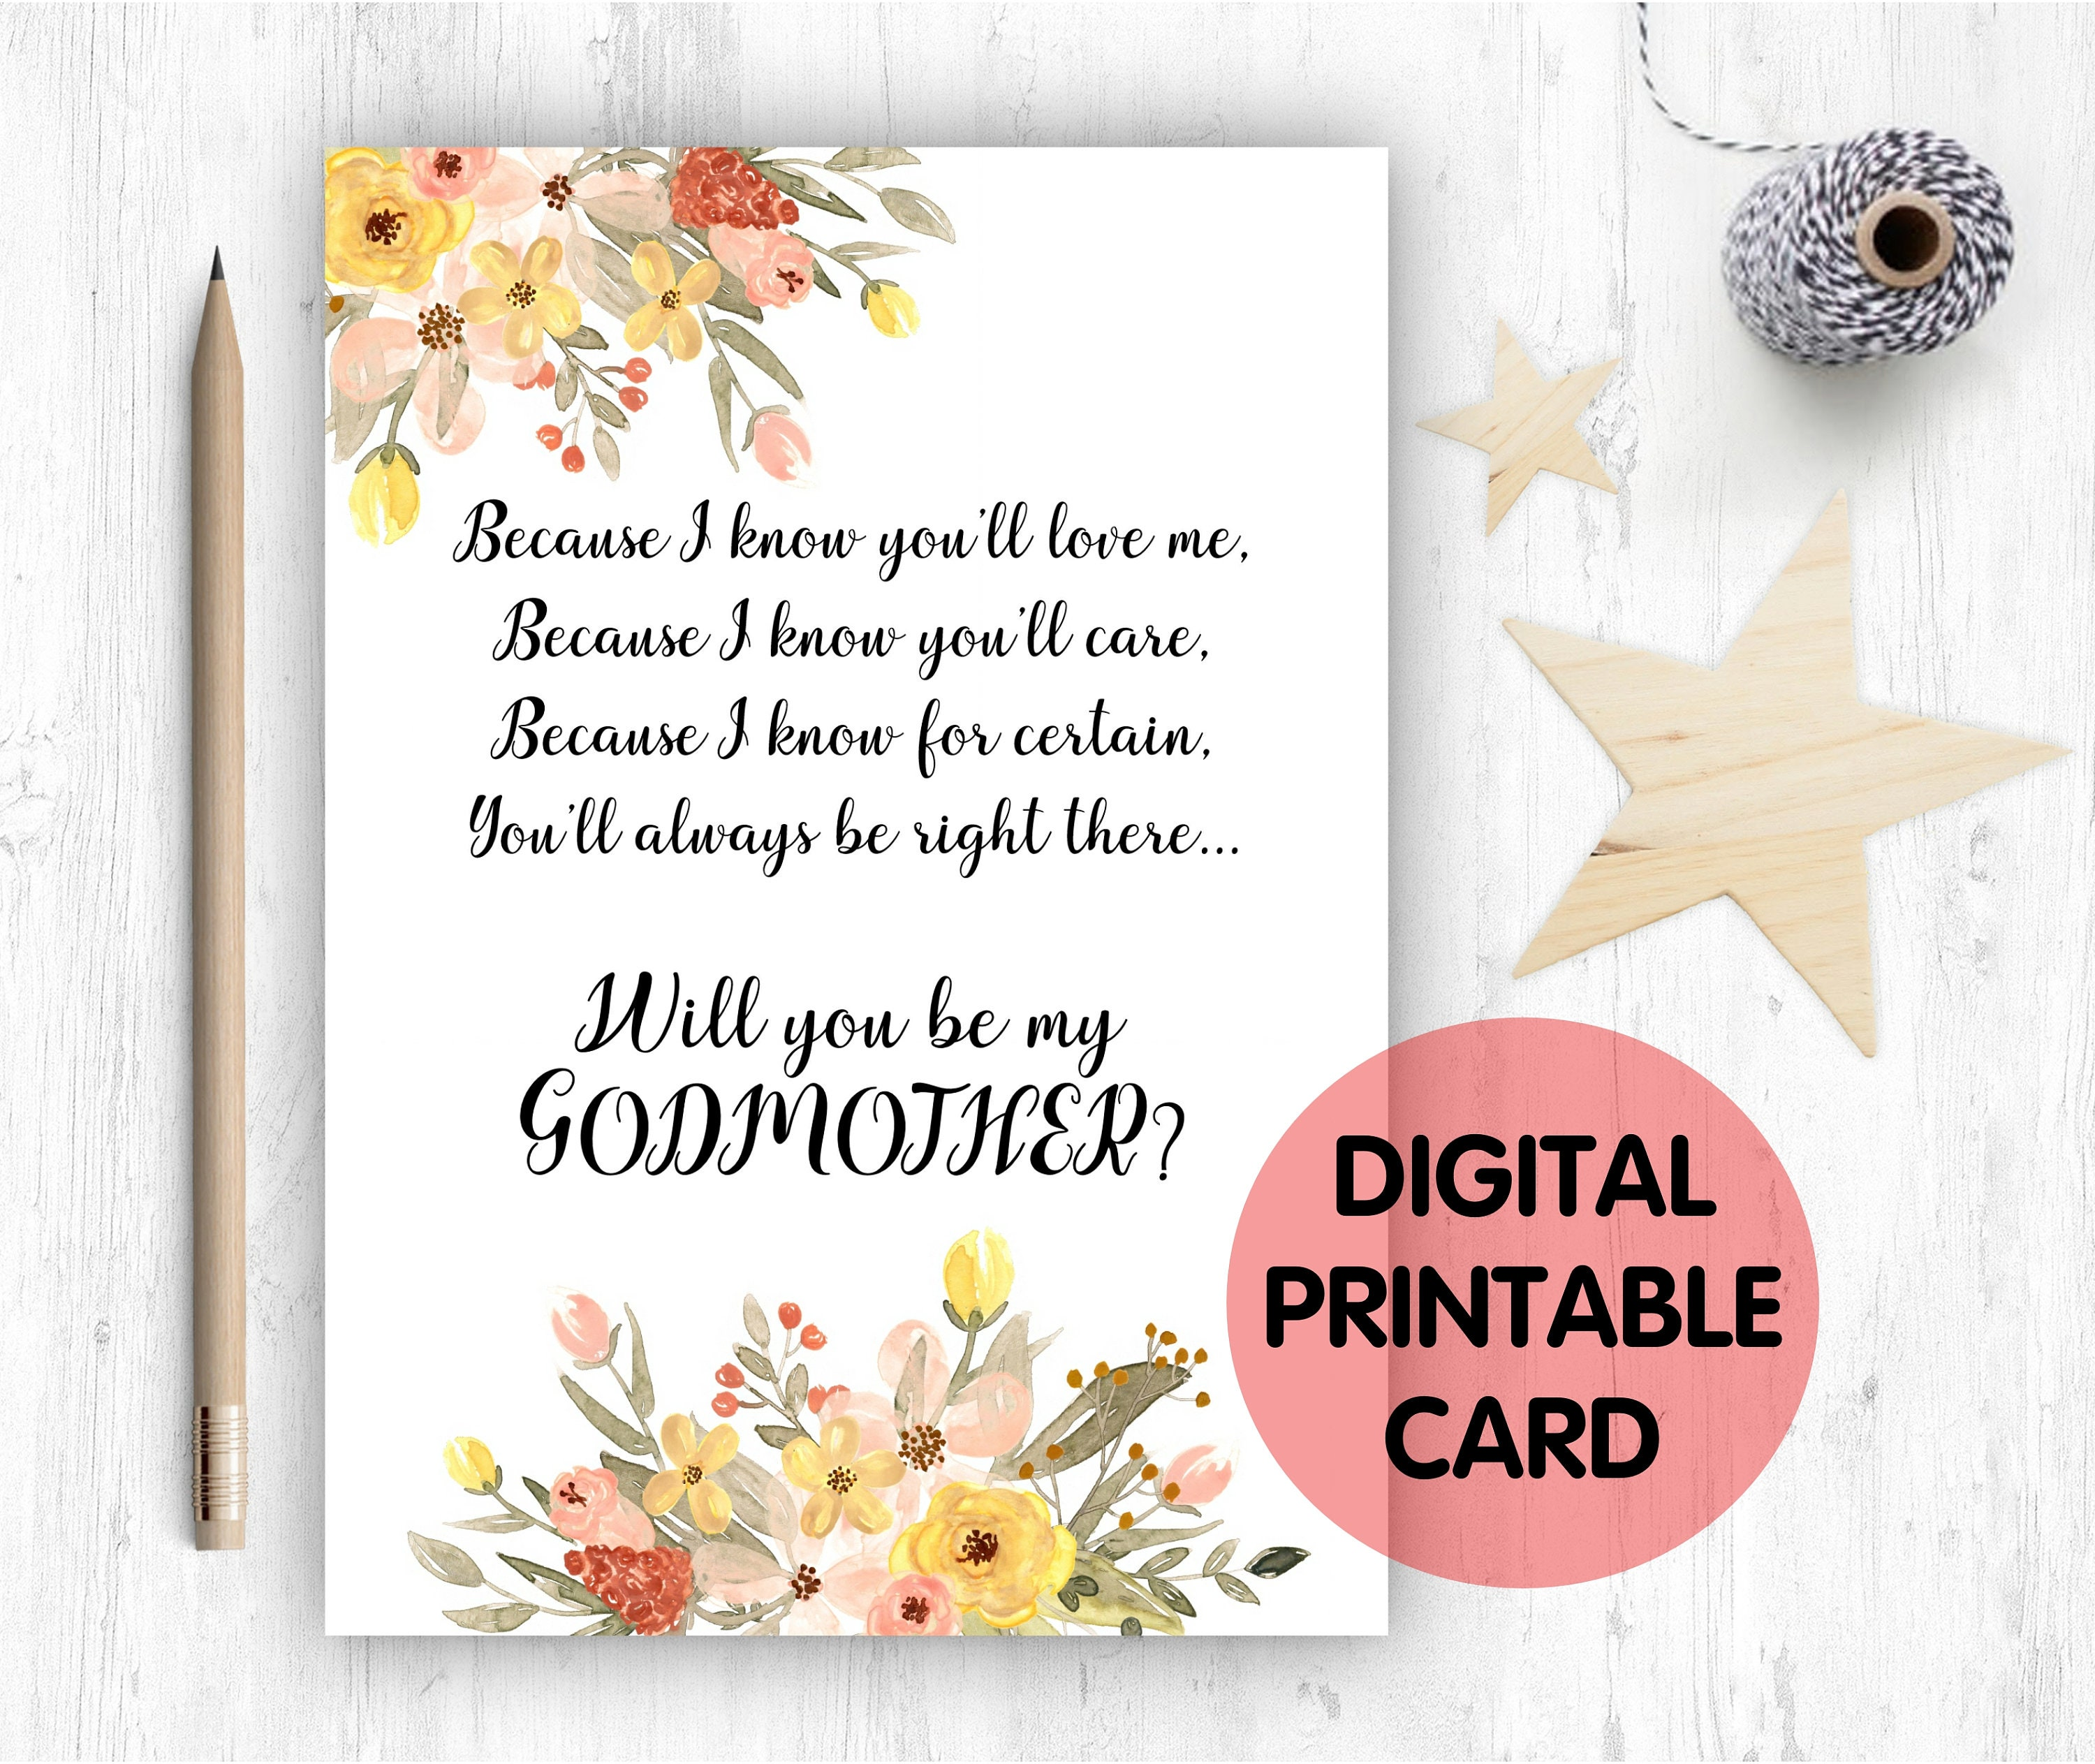 Printable will you be my godmother card godmother card printable printable will you be my godmother card godmother card printable godmother card godmother poem because i know youll love me m4hsunfo